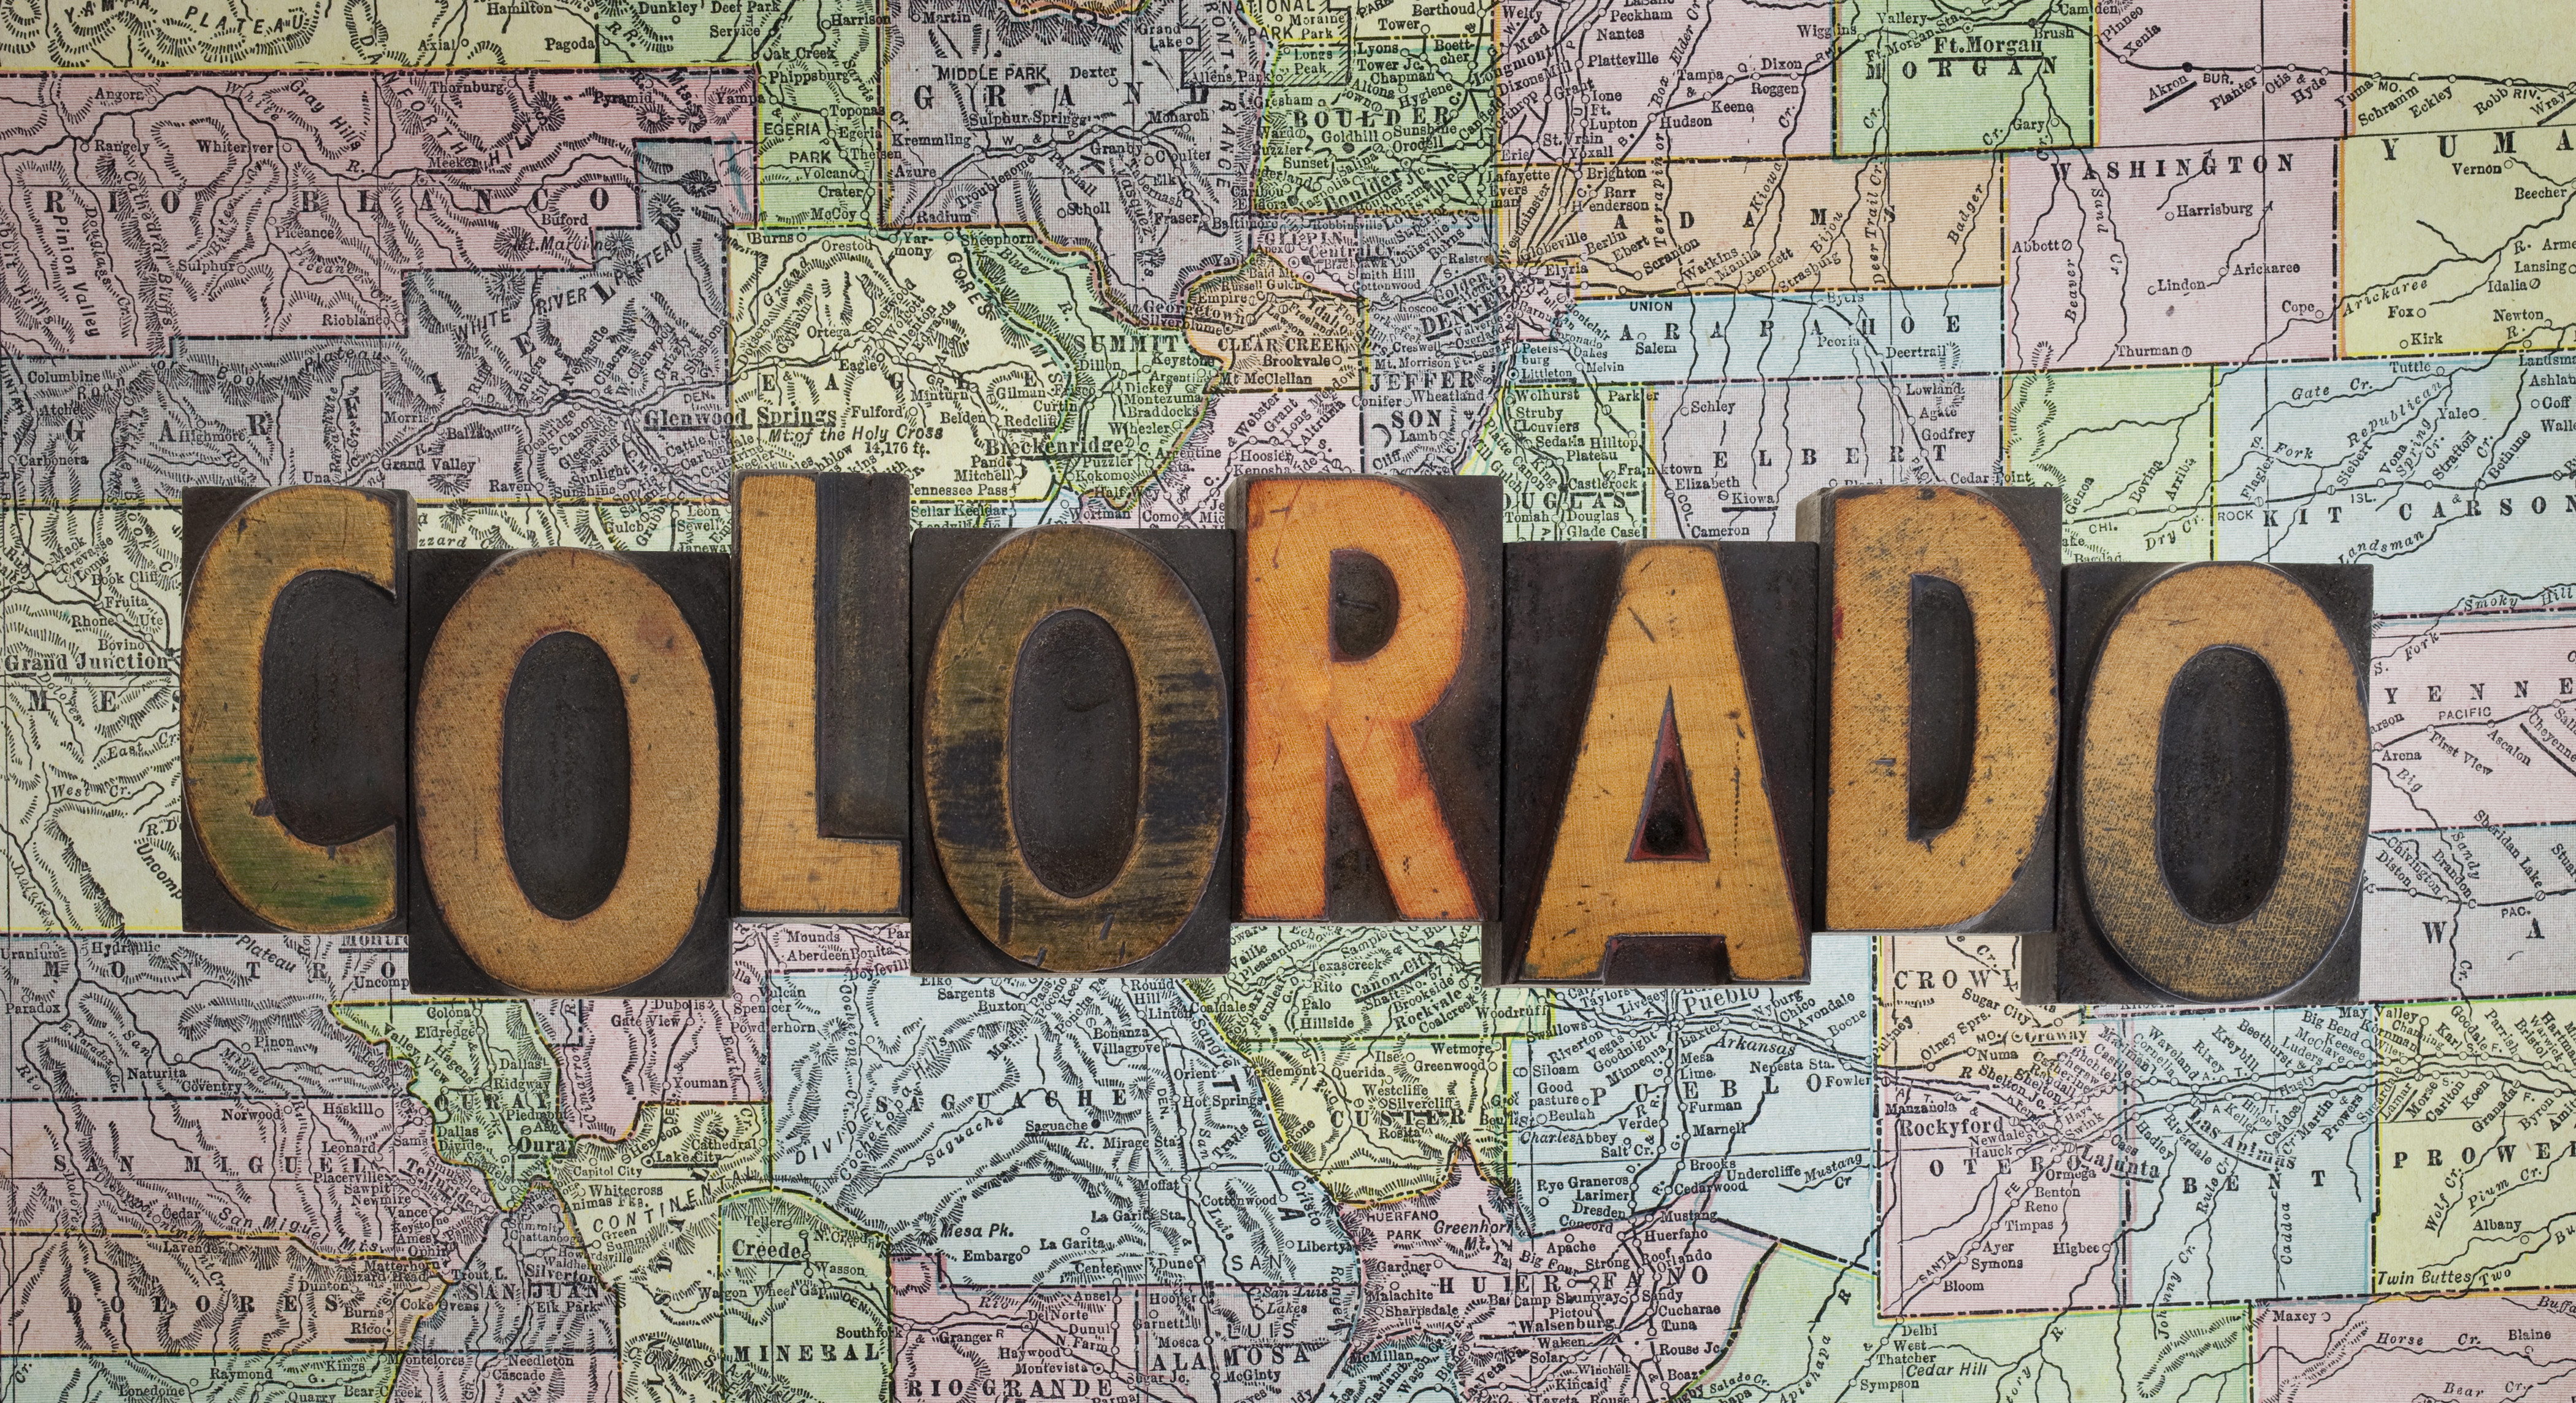 denver day trips, road trips in Colorado, colorado day trips, denver day trips for families, good family trips in colorado, where to visit in Colorado, places to see in Colorado, places to see in Denver, places to visit in Denver, road trips in colorado for kids